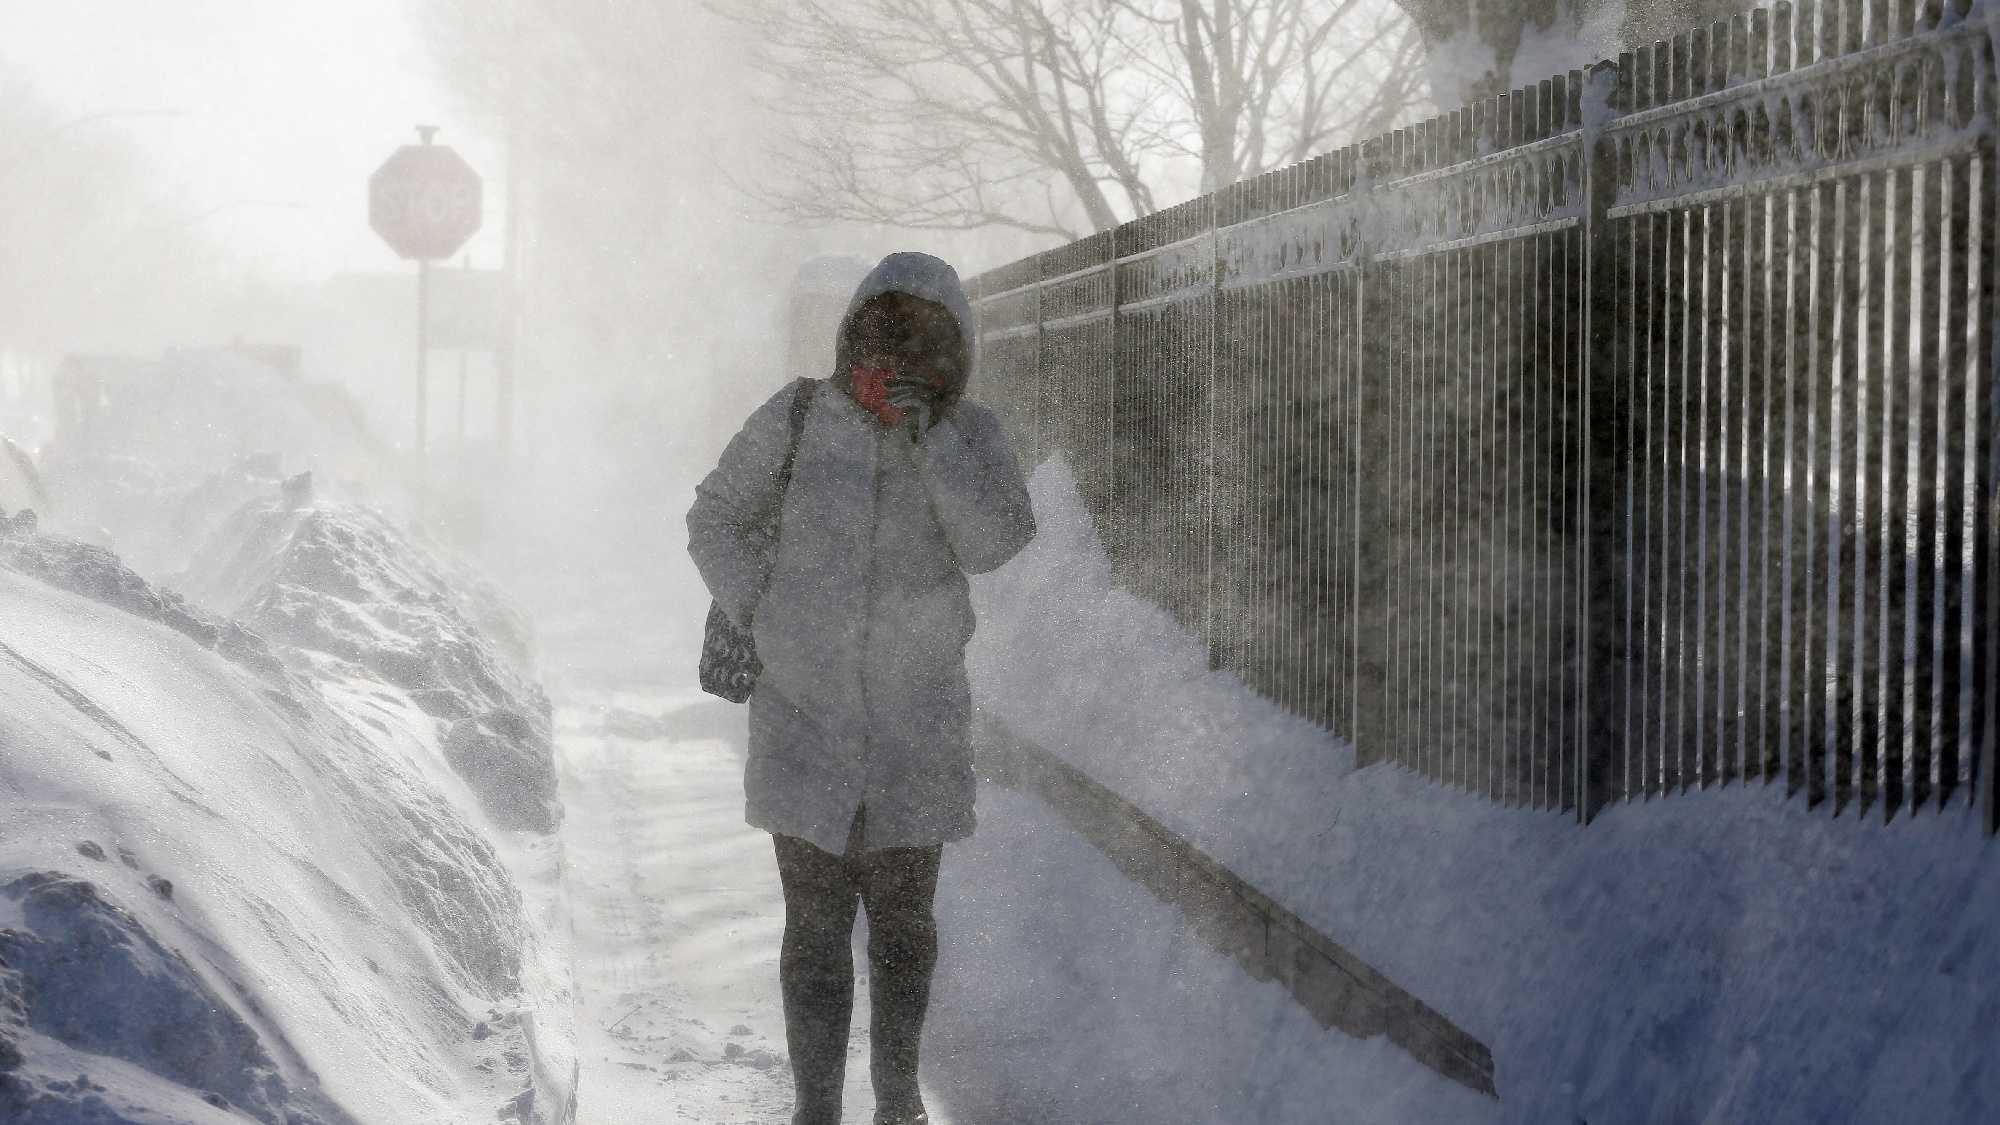 A woman walks through blowing snow in the East Boston neighborhood of Boston, Monday, Feb. 16, 2015. New England remained bitterly cold Monday after the region's fourth winter storm in a month blew through.